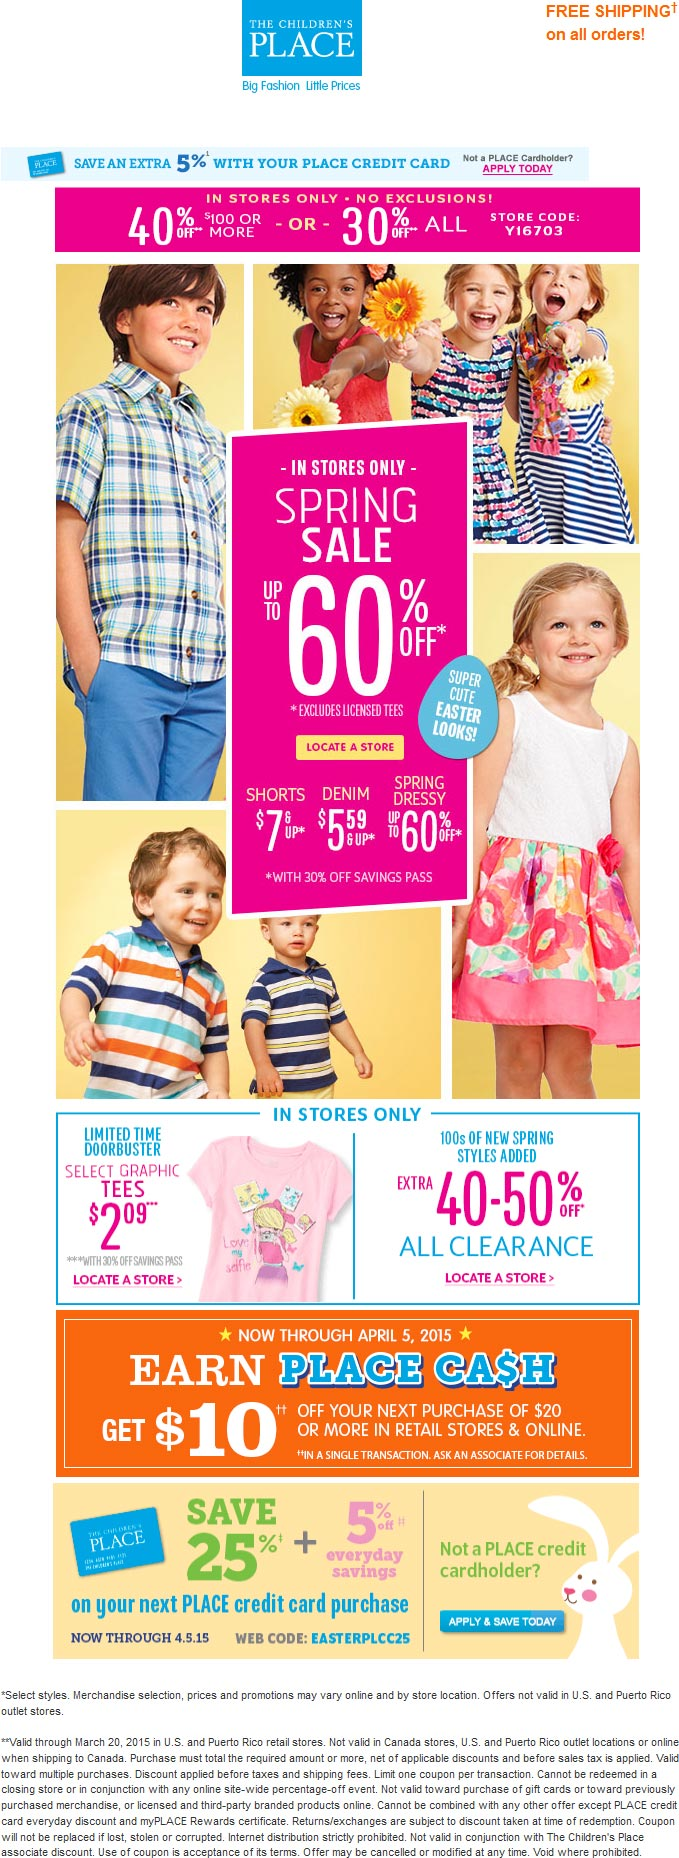 Childrens Place Coupon September 2017 30-40% off everyhing at The Childrens Place